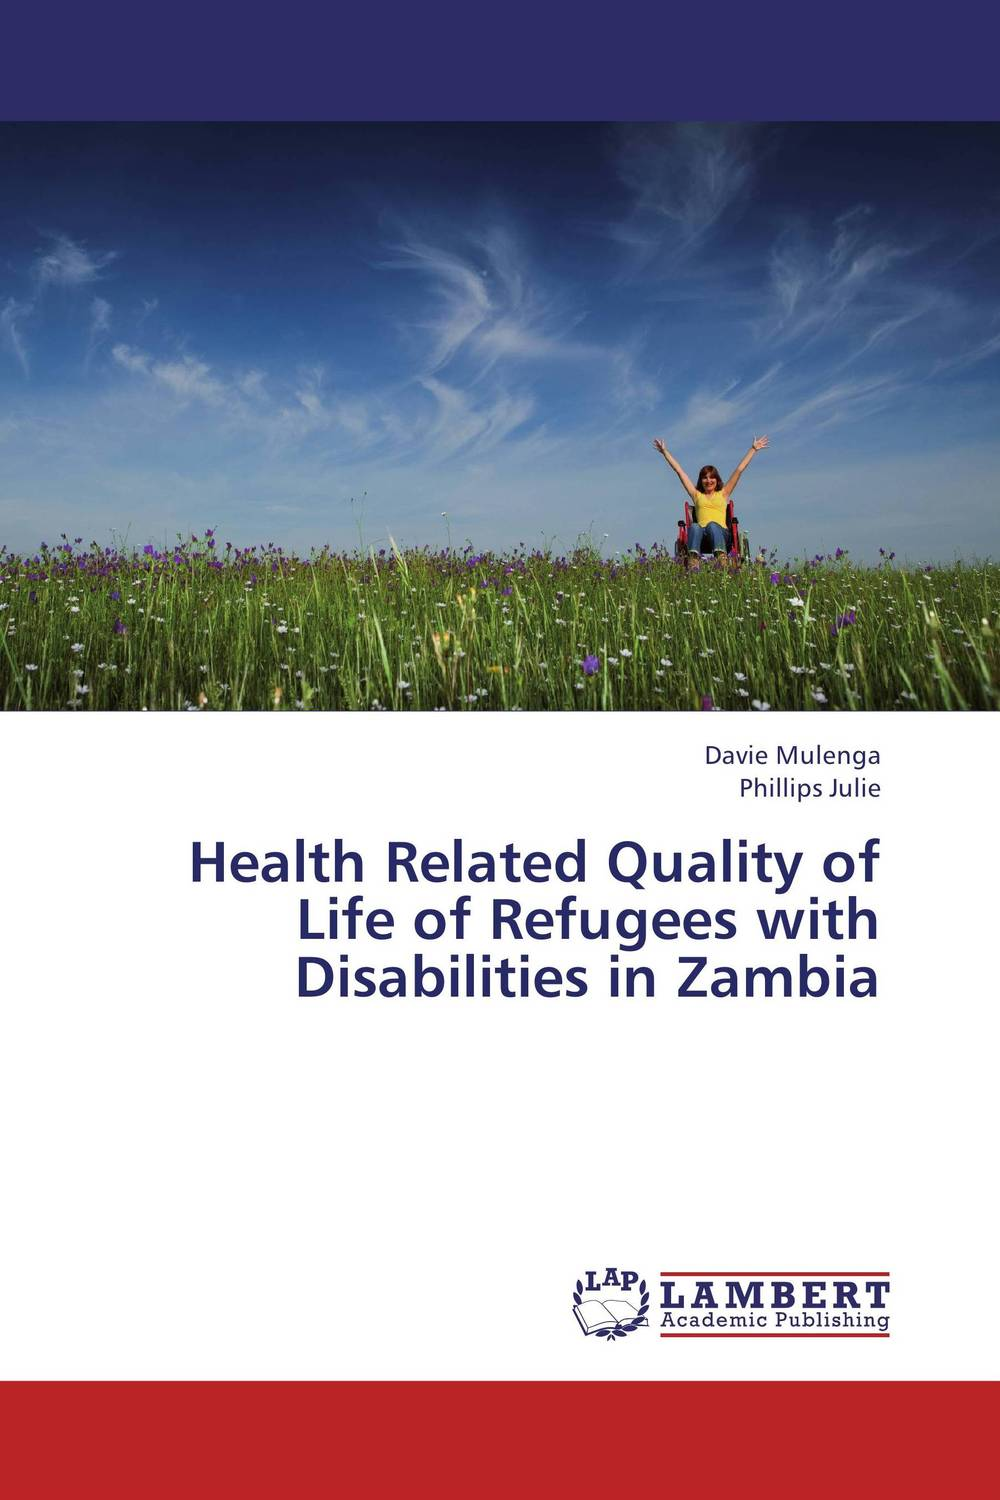 Health Related Quality of Life of Refugees with Disabilities in Zambia prostate health devices is prostate removal prostatitis mainly for the prostate health and prostatitis health capsule